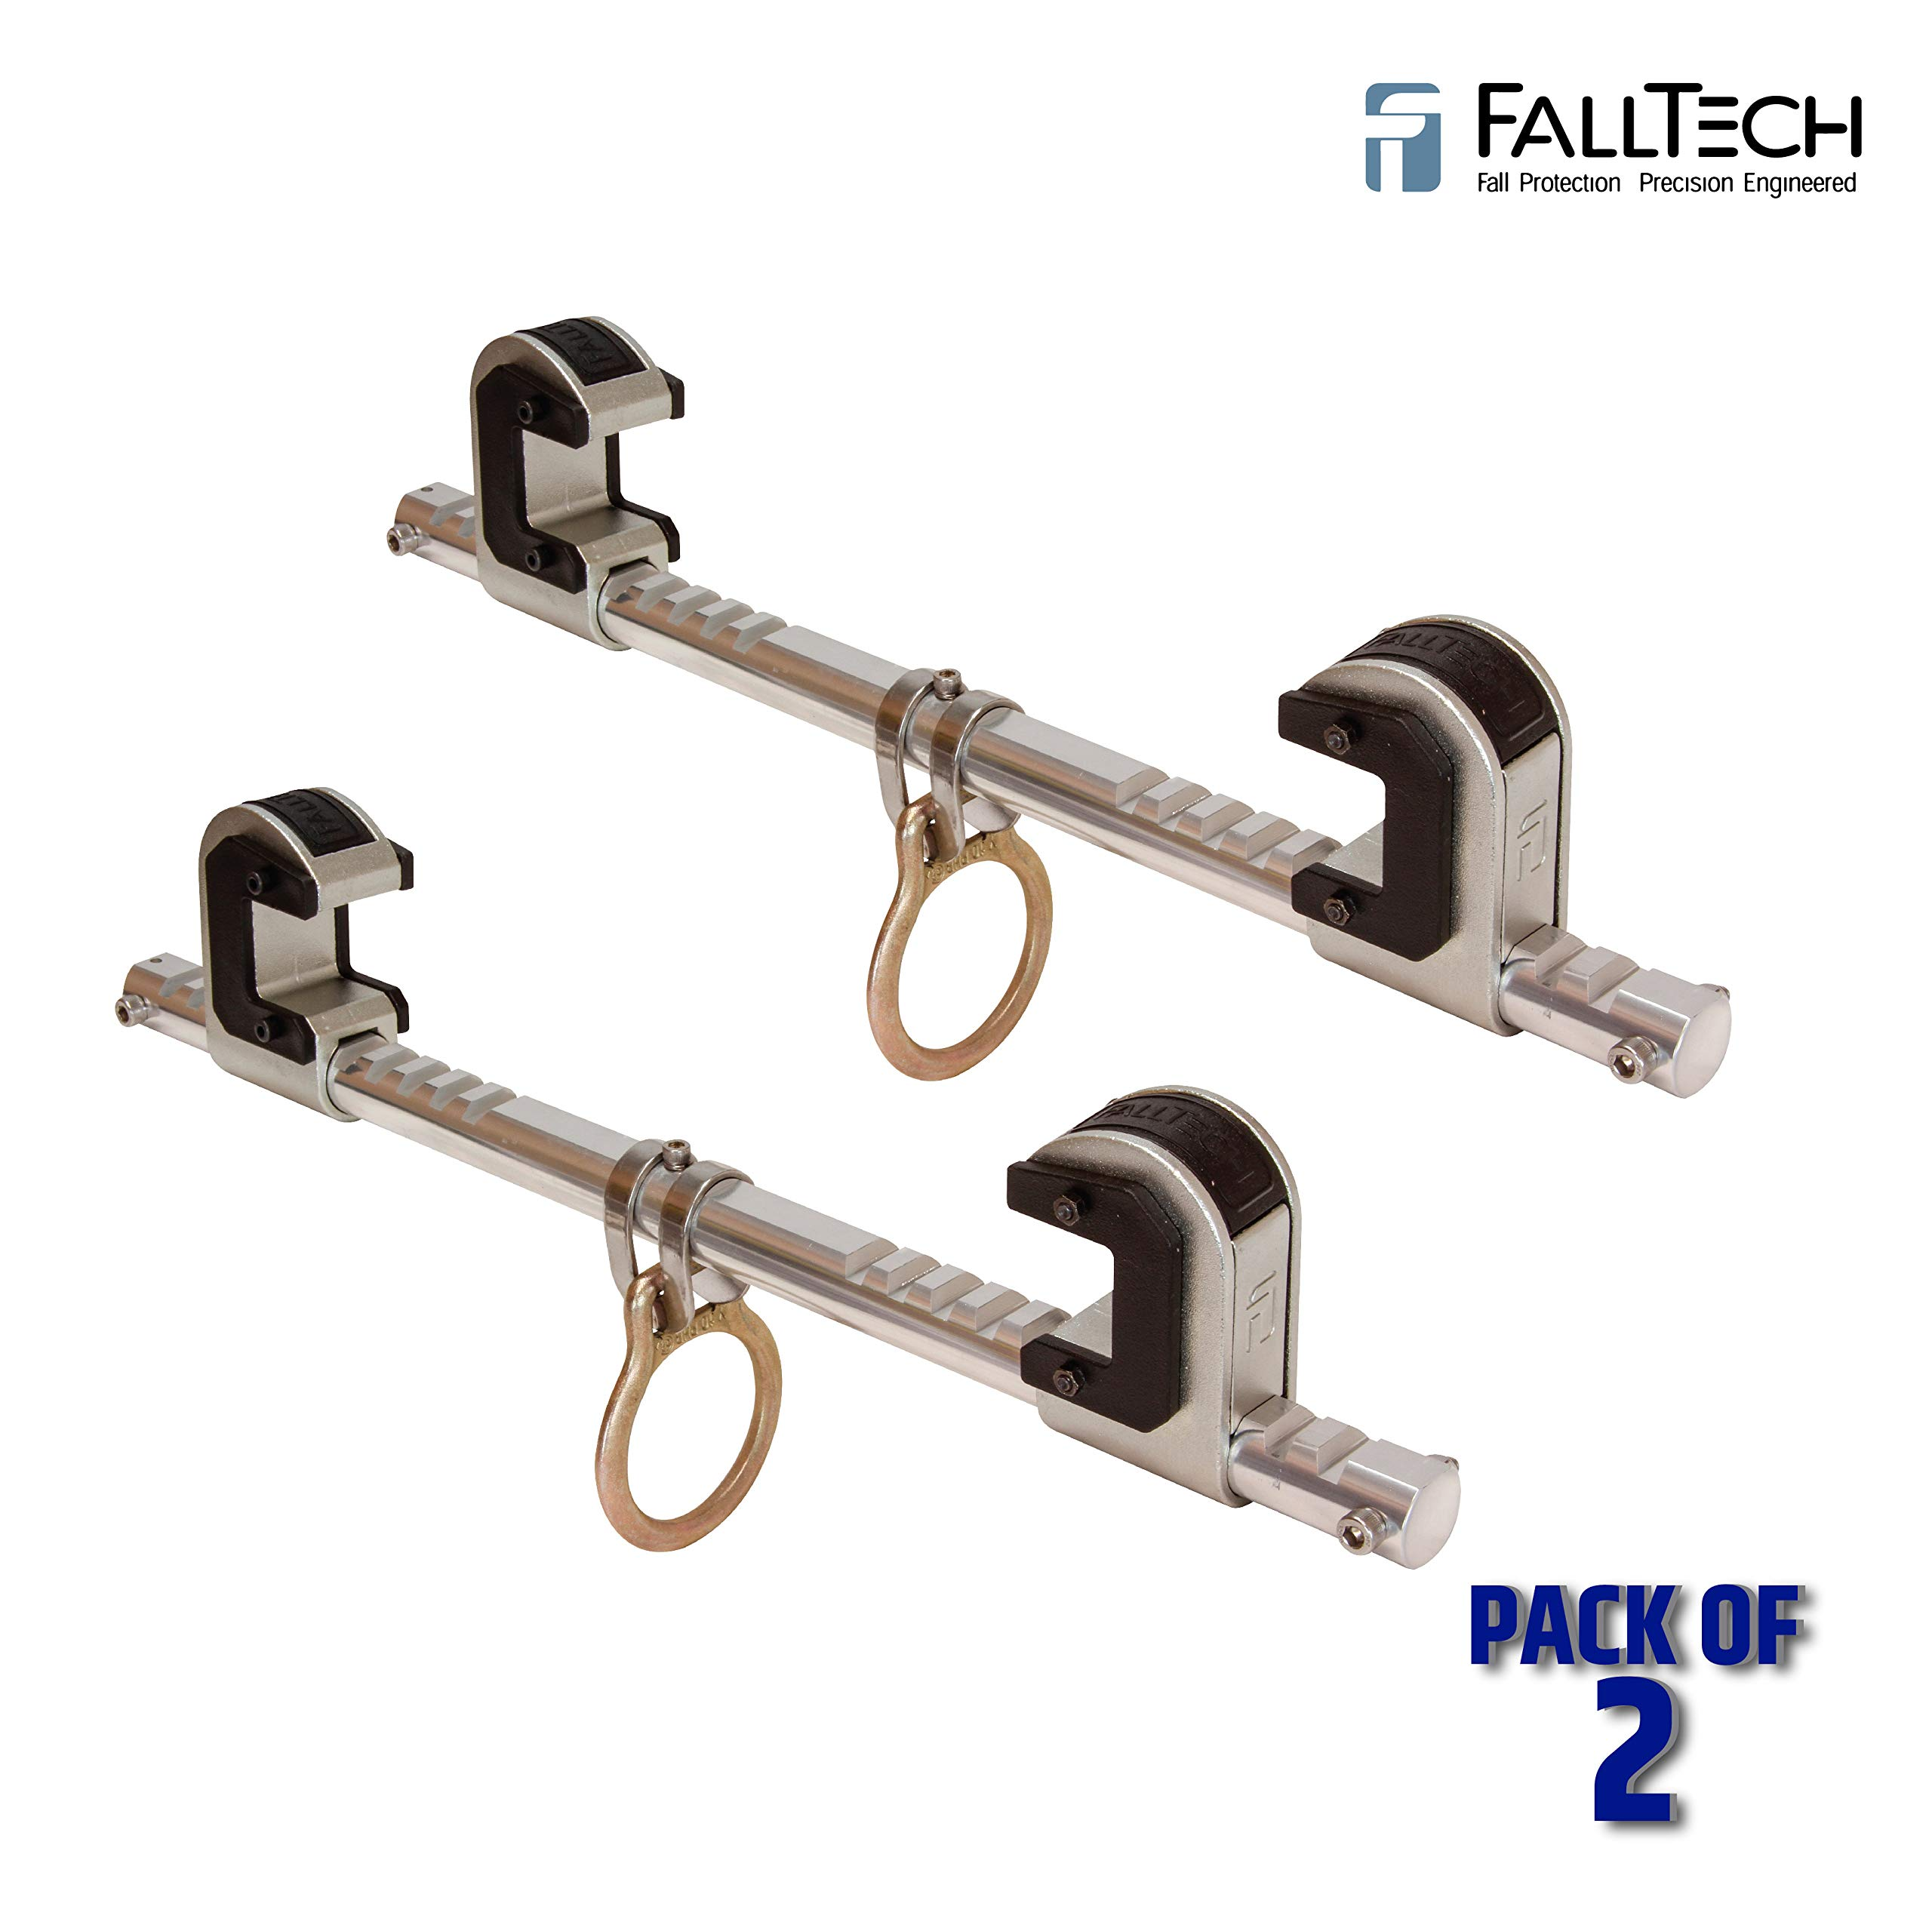 FallTech 7530 Steel, Trailing Beam Clamp Steel - Dual Ratcheting for Centering on I-beam, Machined Aluminum Bar, Steel Jaws w/Slider Pads, 4'' to 14'' (2 Pack) by FallTech